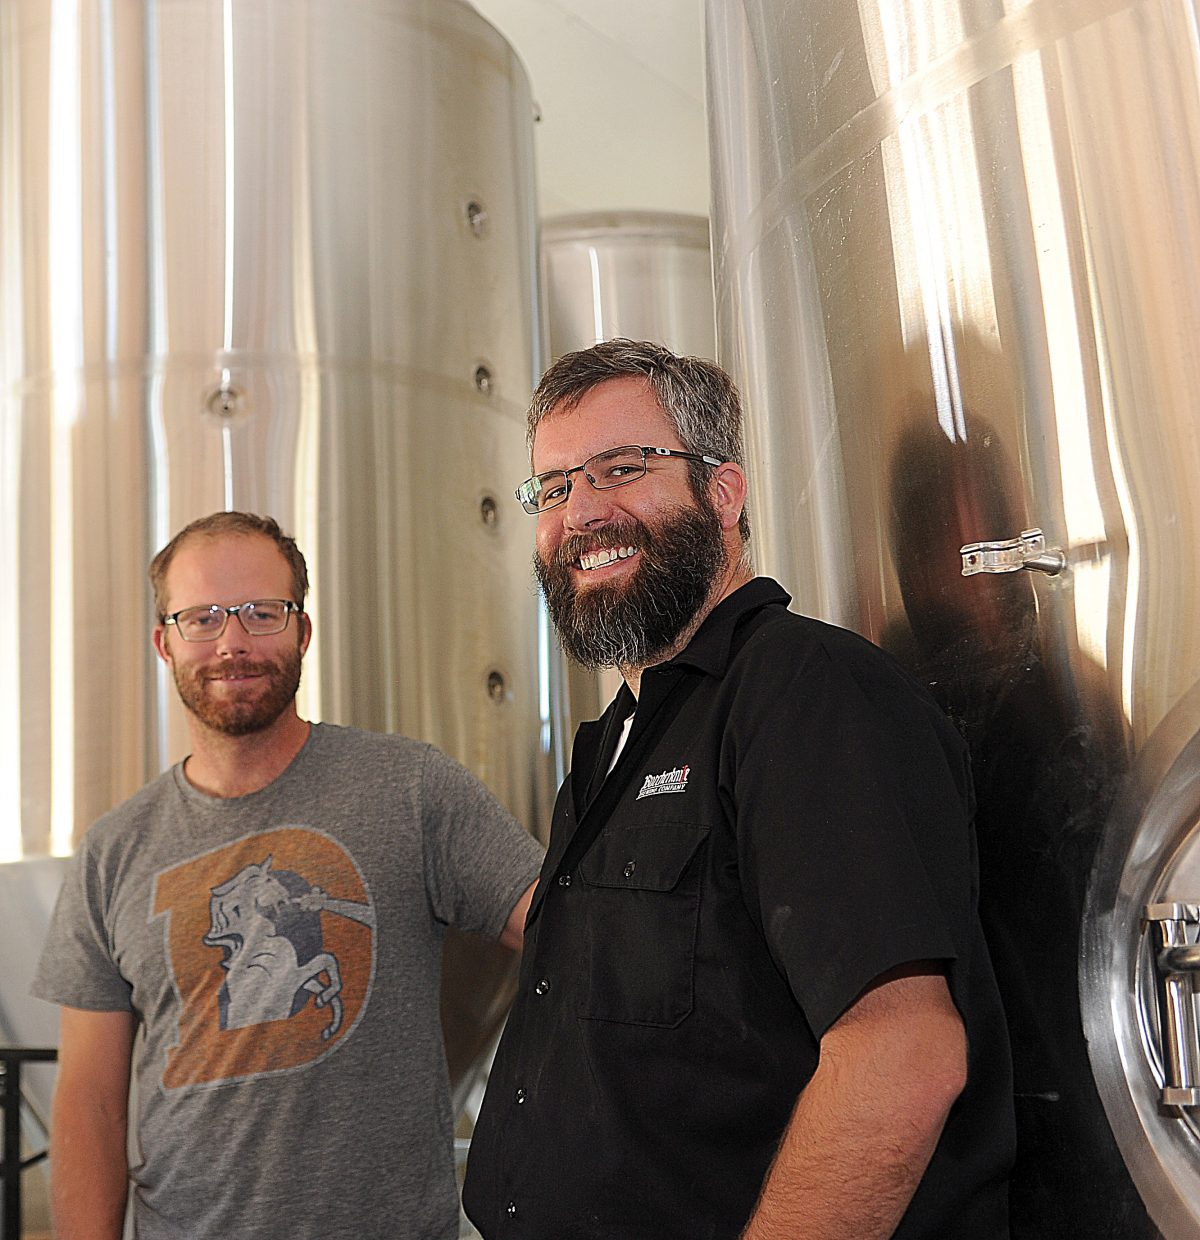 Butcherknife Brewing owners Nate Johansing, left, and Mark Fitzgerald stand inside the company's new facilities on Elk River Road. The building, which is still under construction, will house Butcherknife's operations and also be home for a tasting bar.